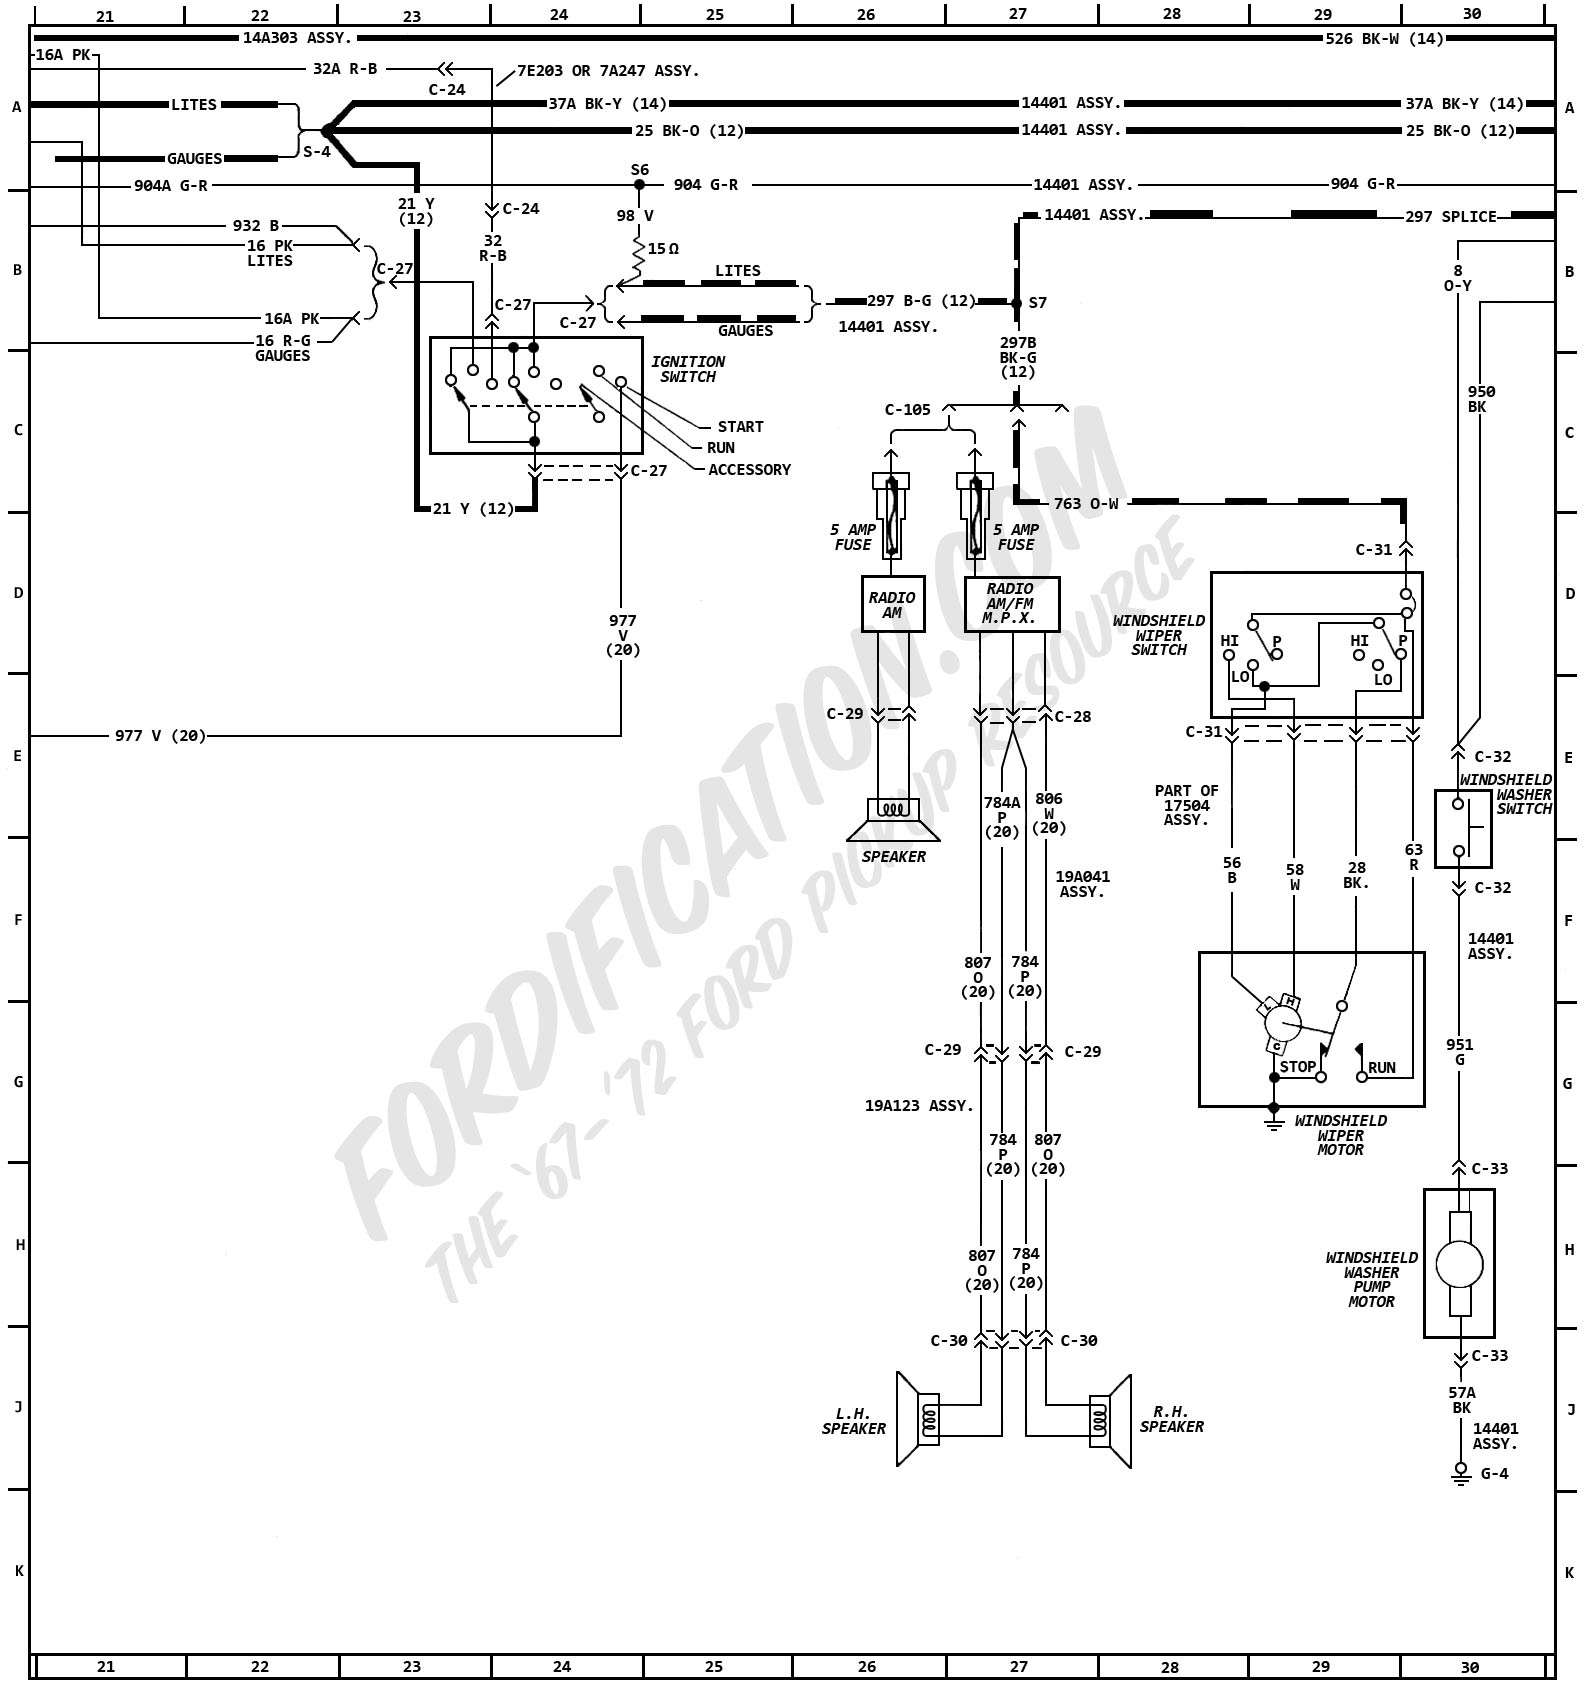 1991 ford l8000 wiring diagram 1982 ford l8000 wiring diagram wiring diagram for ford l8000